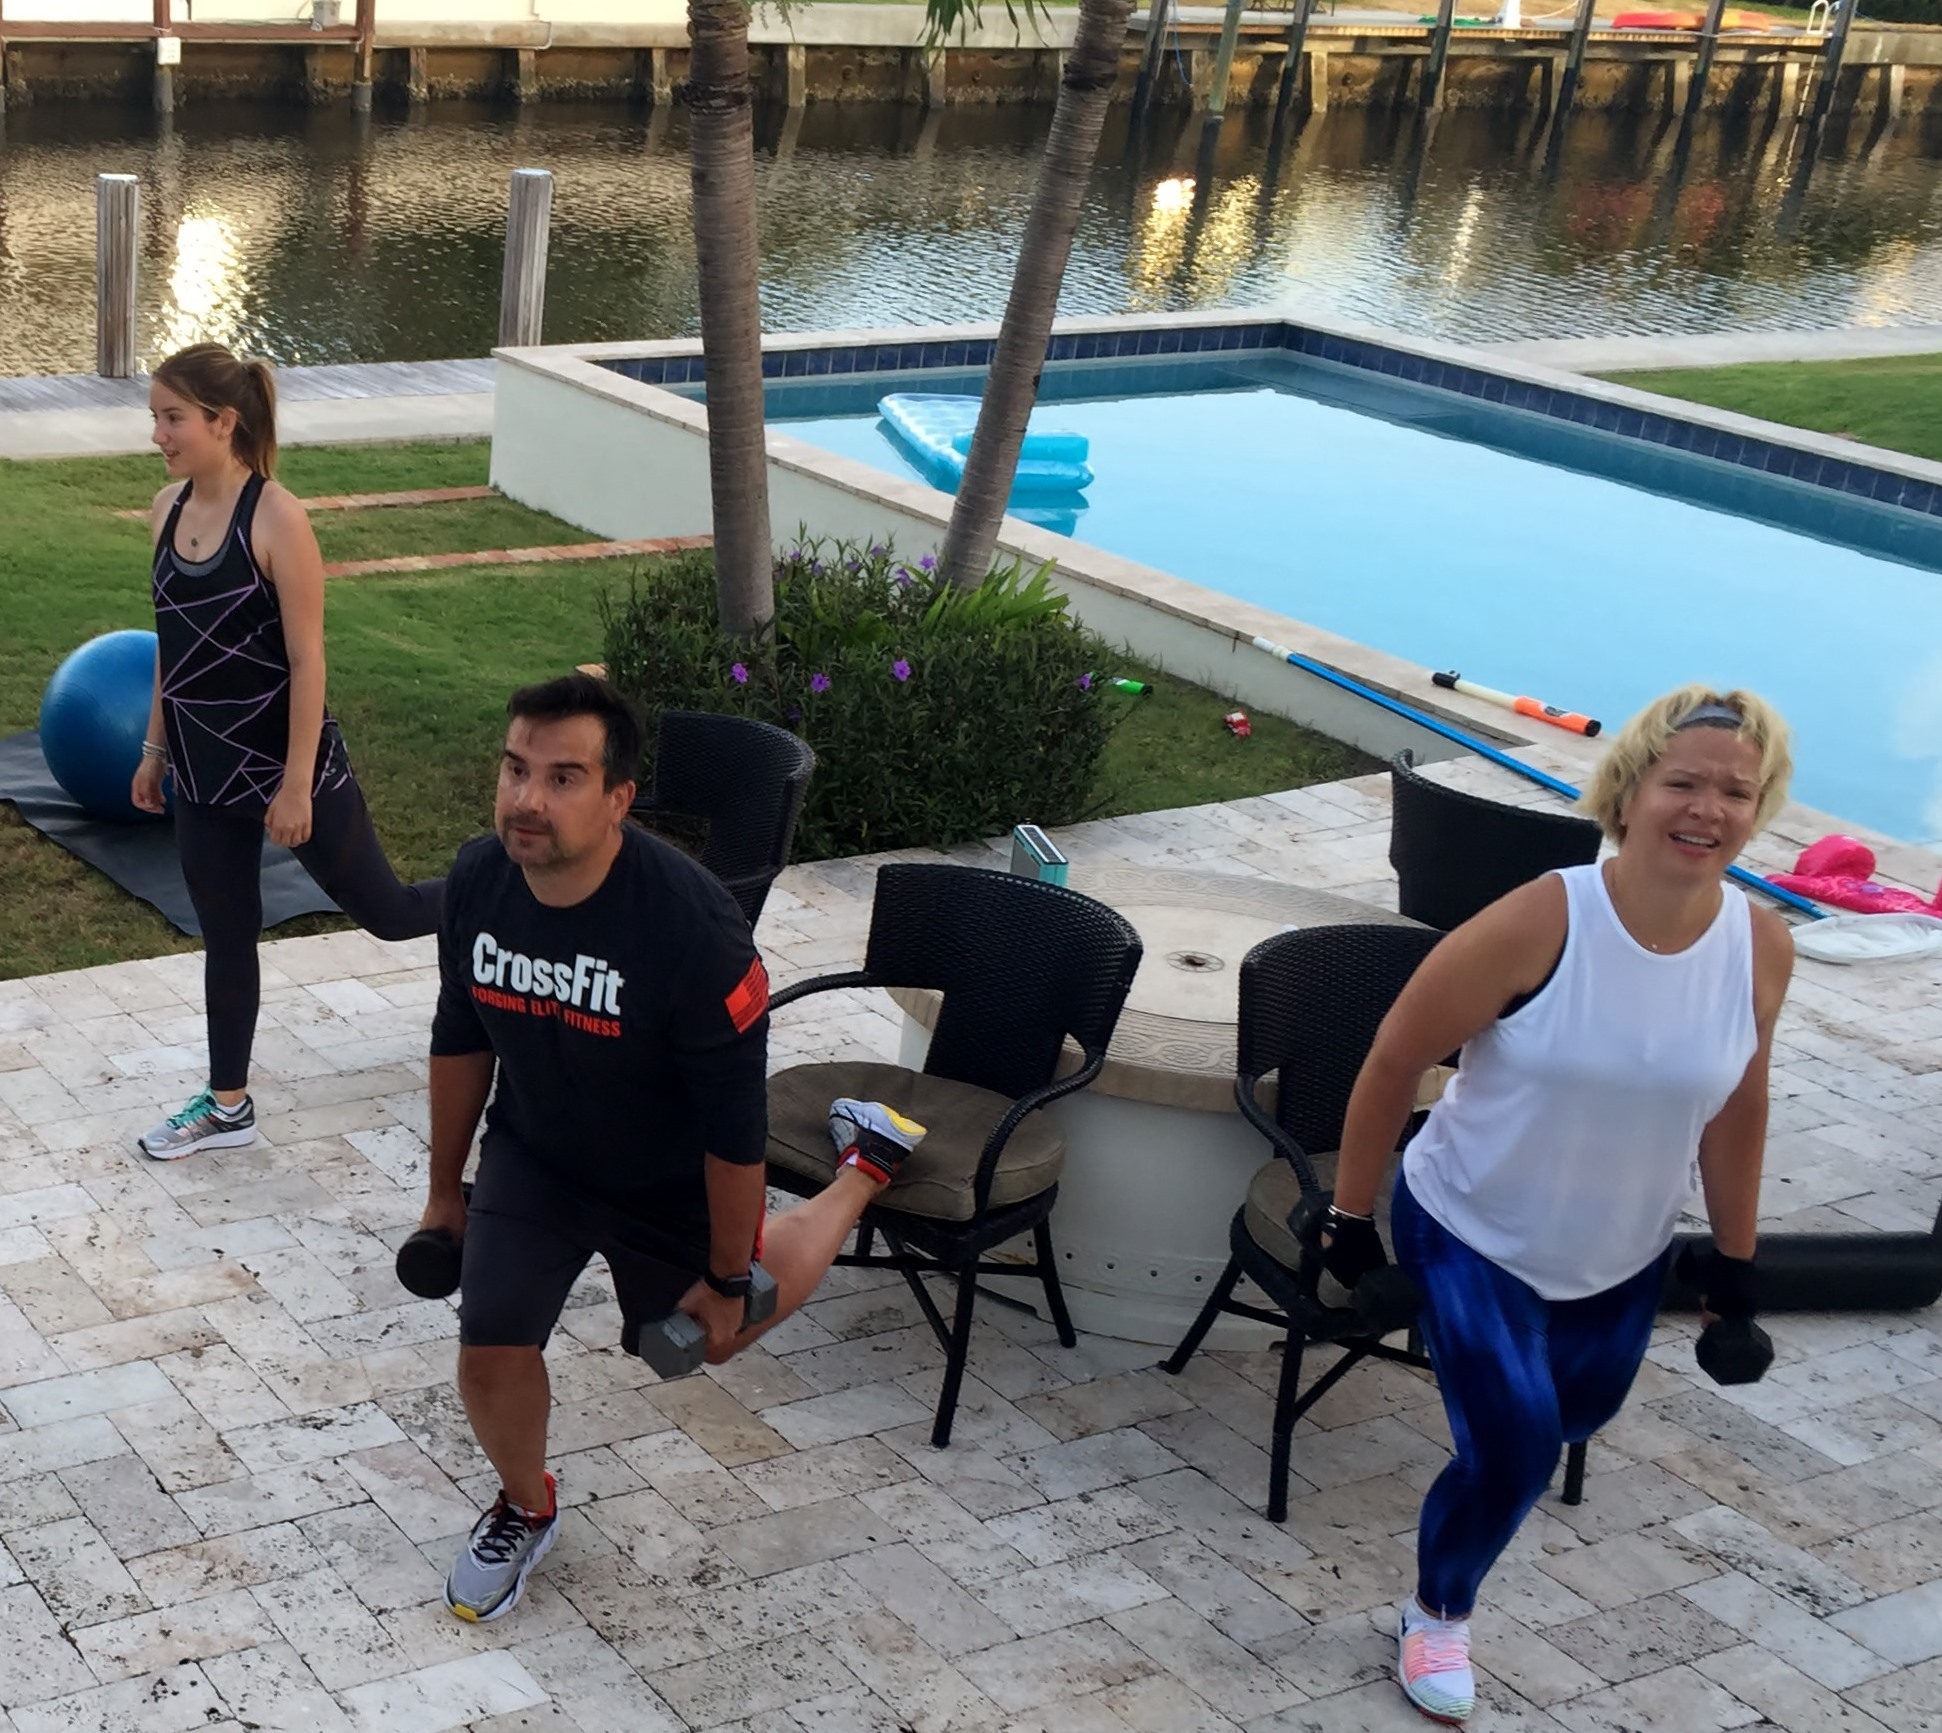 Family personal training session